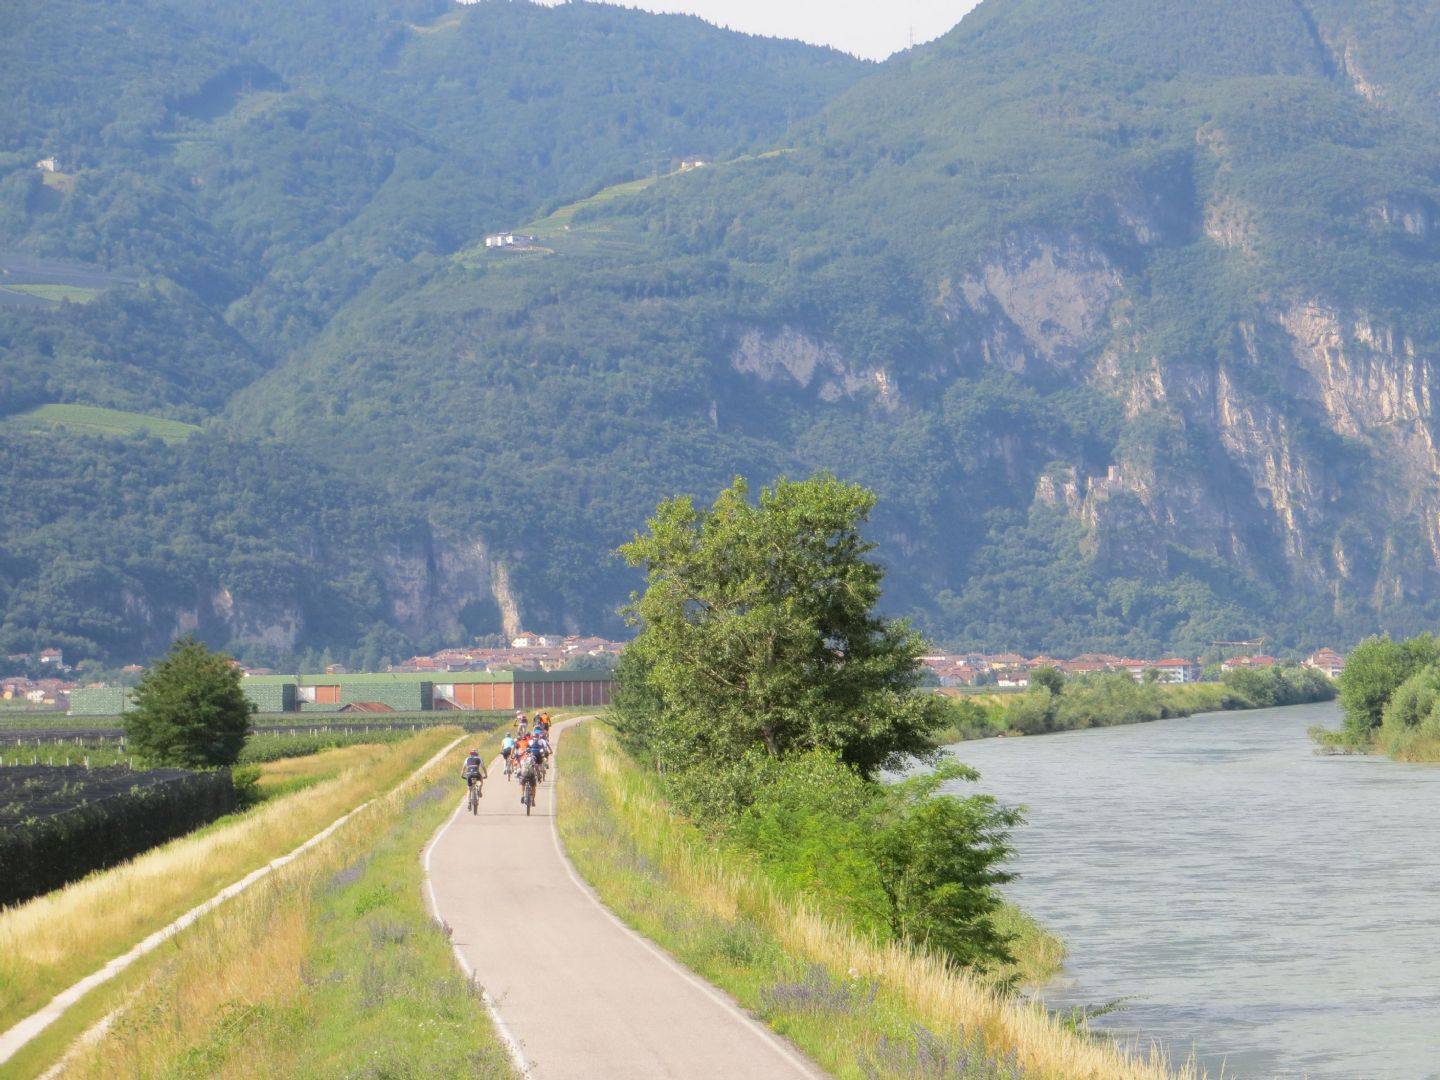 leisurecycling austria2.jpg - Austria - Ten Lakes Tour - Self-Guided Leisure Cycling Holiday - Leisure Cycling